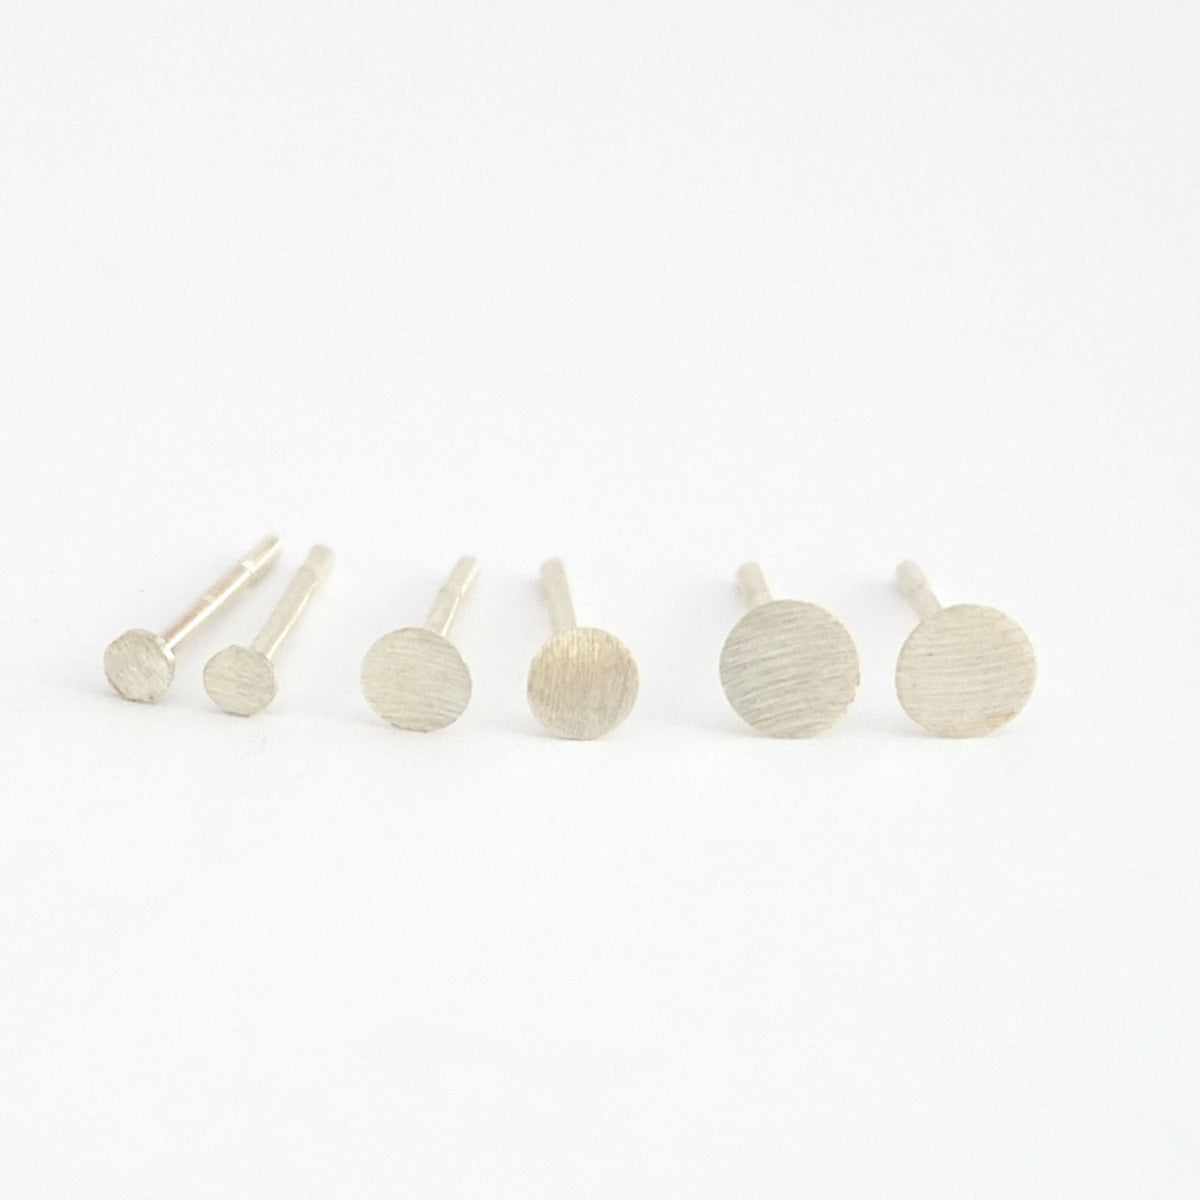 Distinctively Styled Hand-Crafted Flat Circle Stud Earring Set in 2mm, 3mm, & 4mm - 0157 - Virginia Wynne Designs